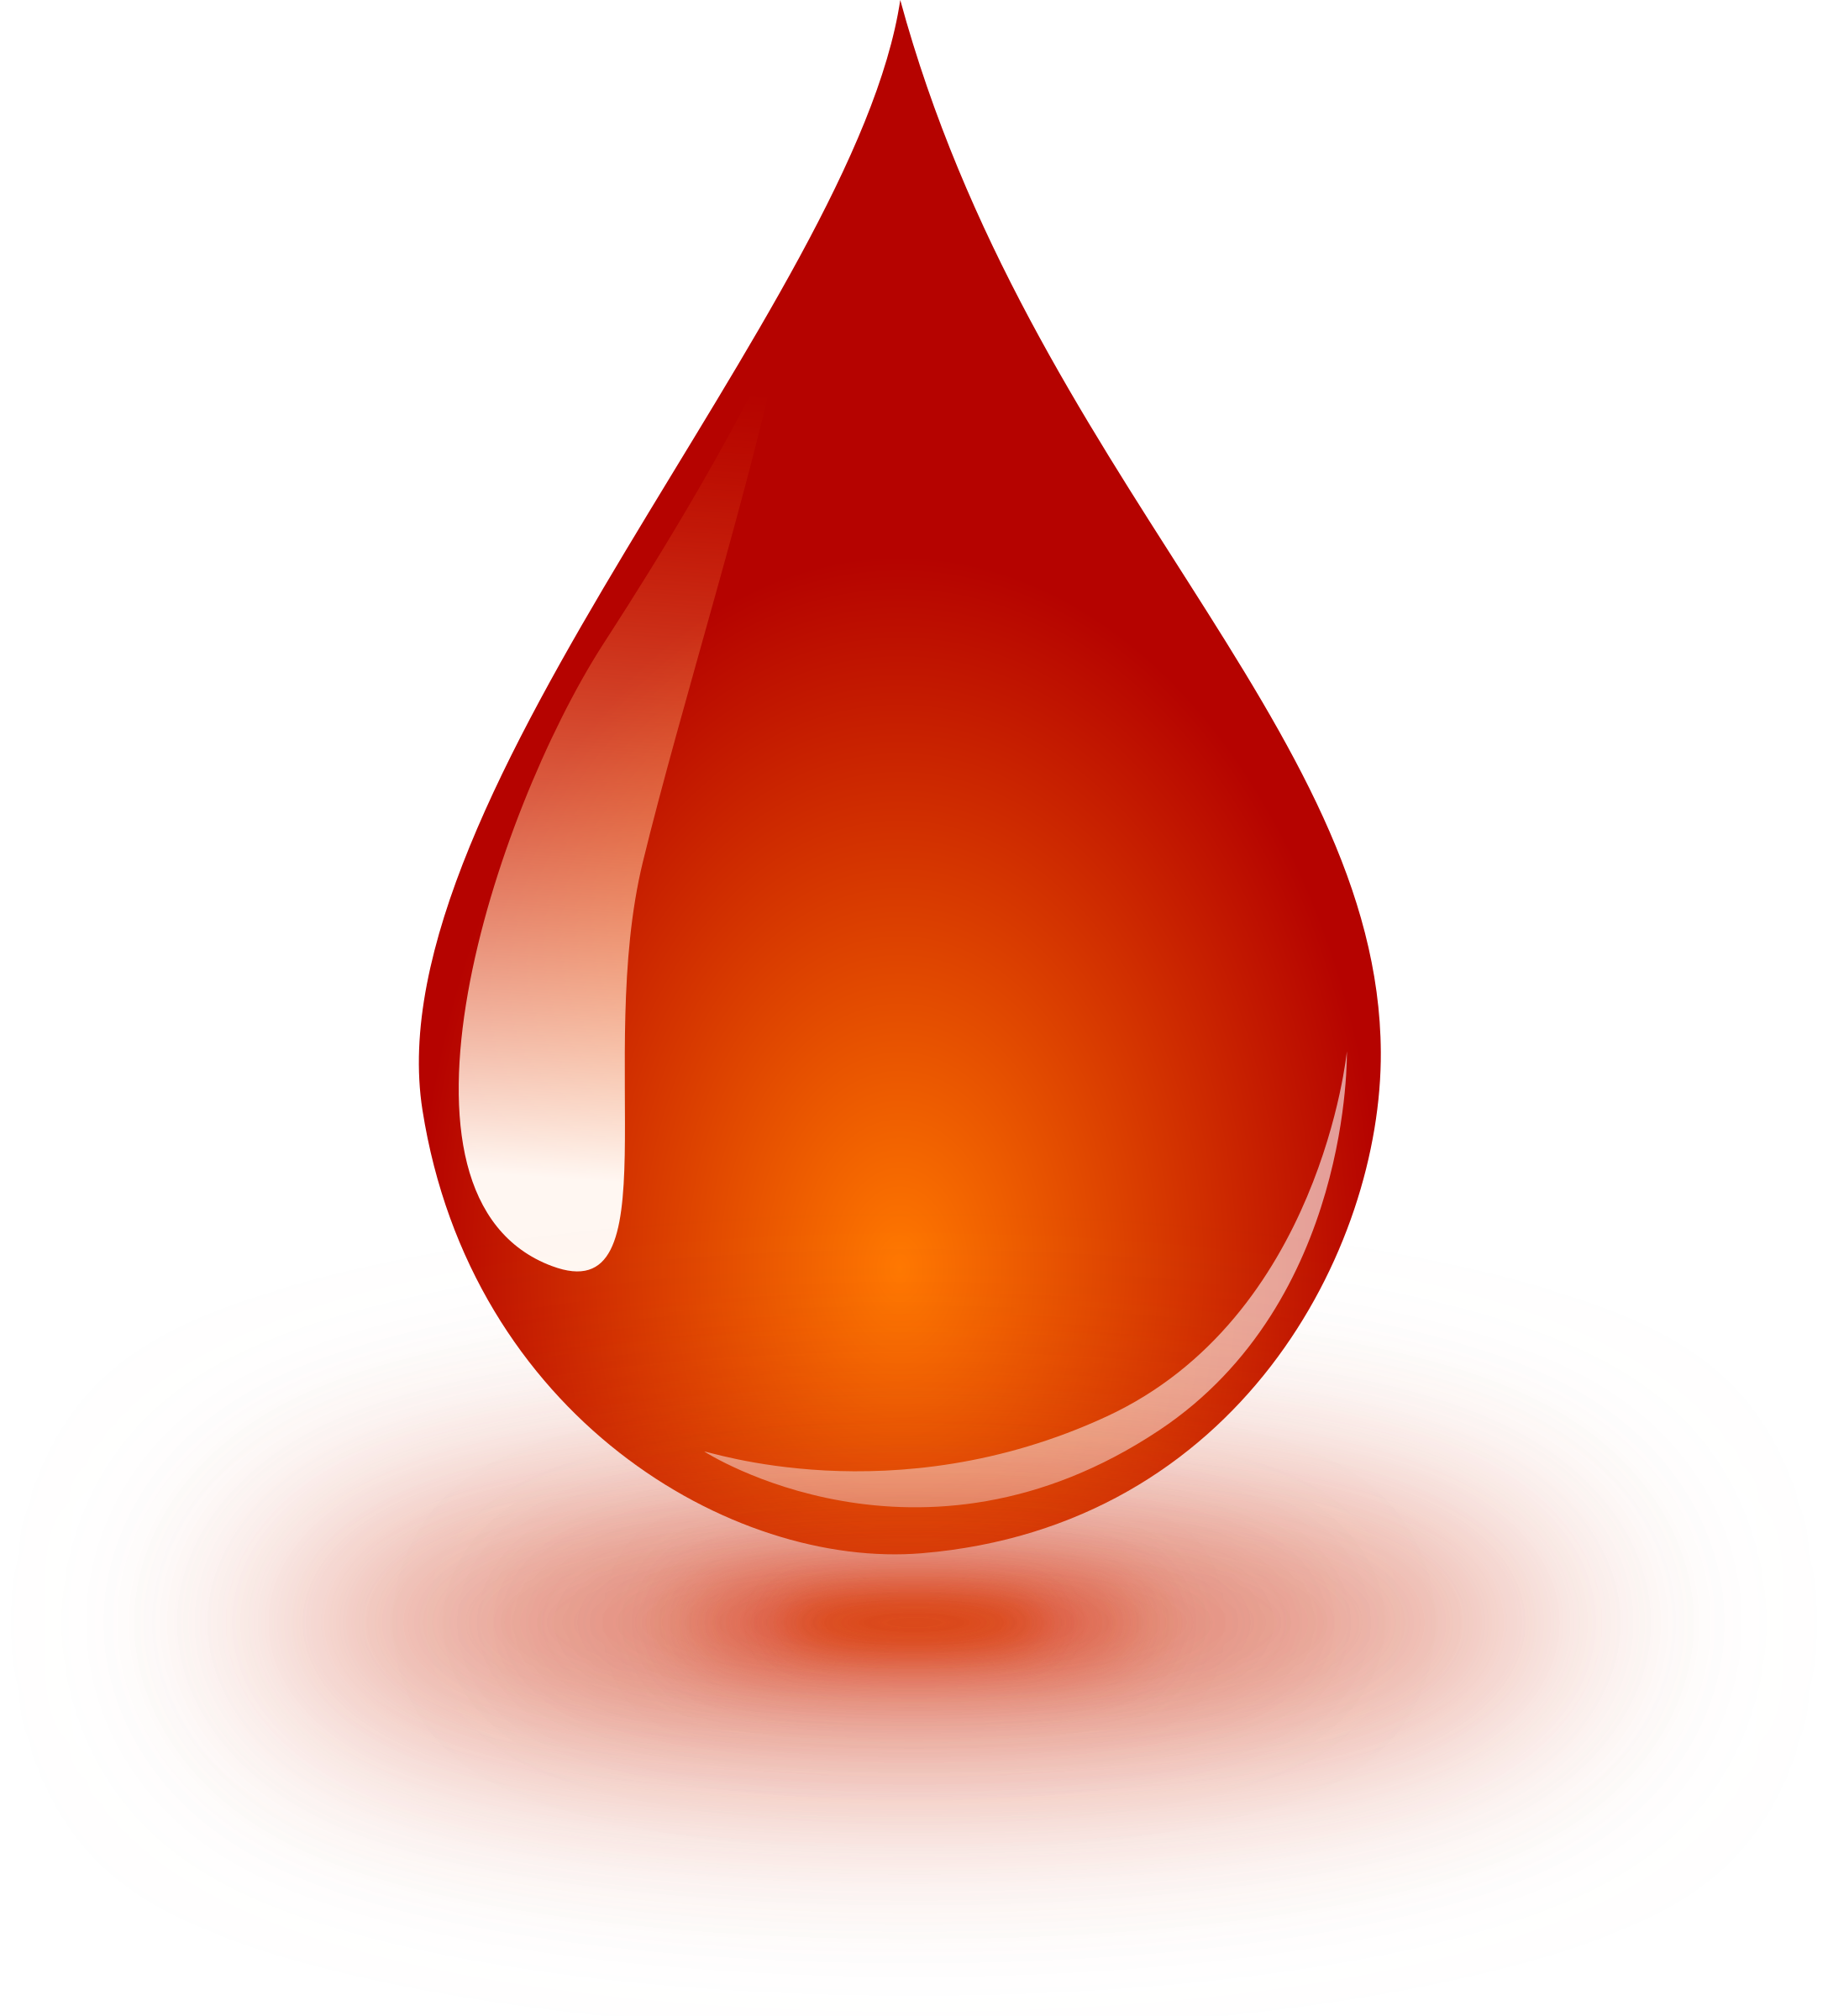 giving blood clipart - photo #35